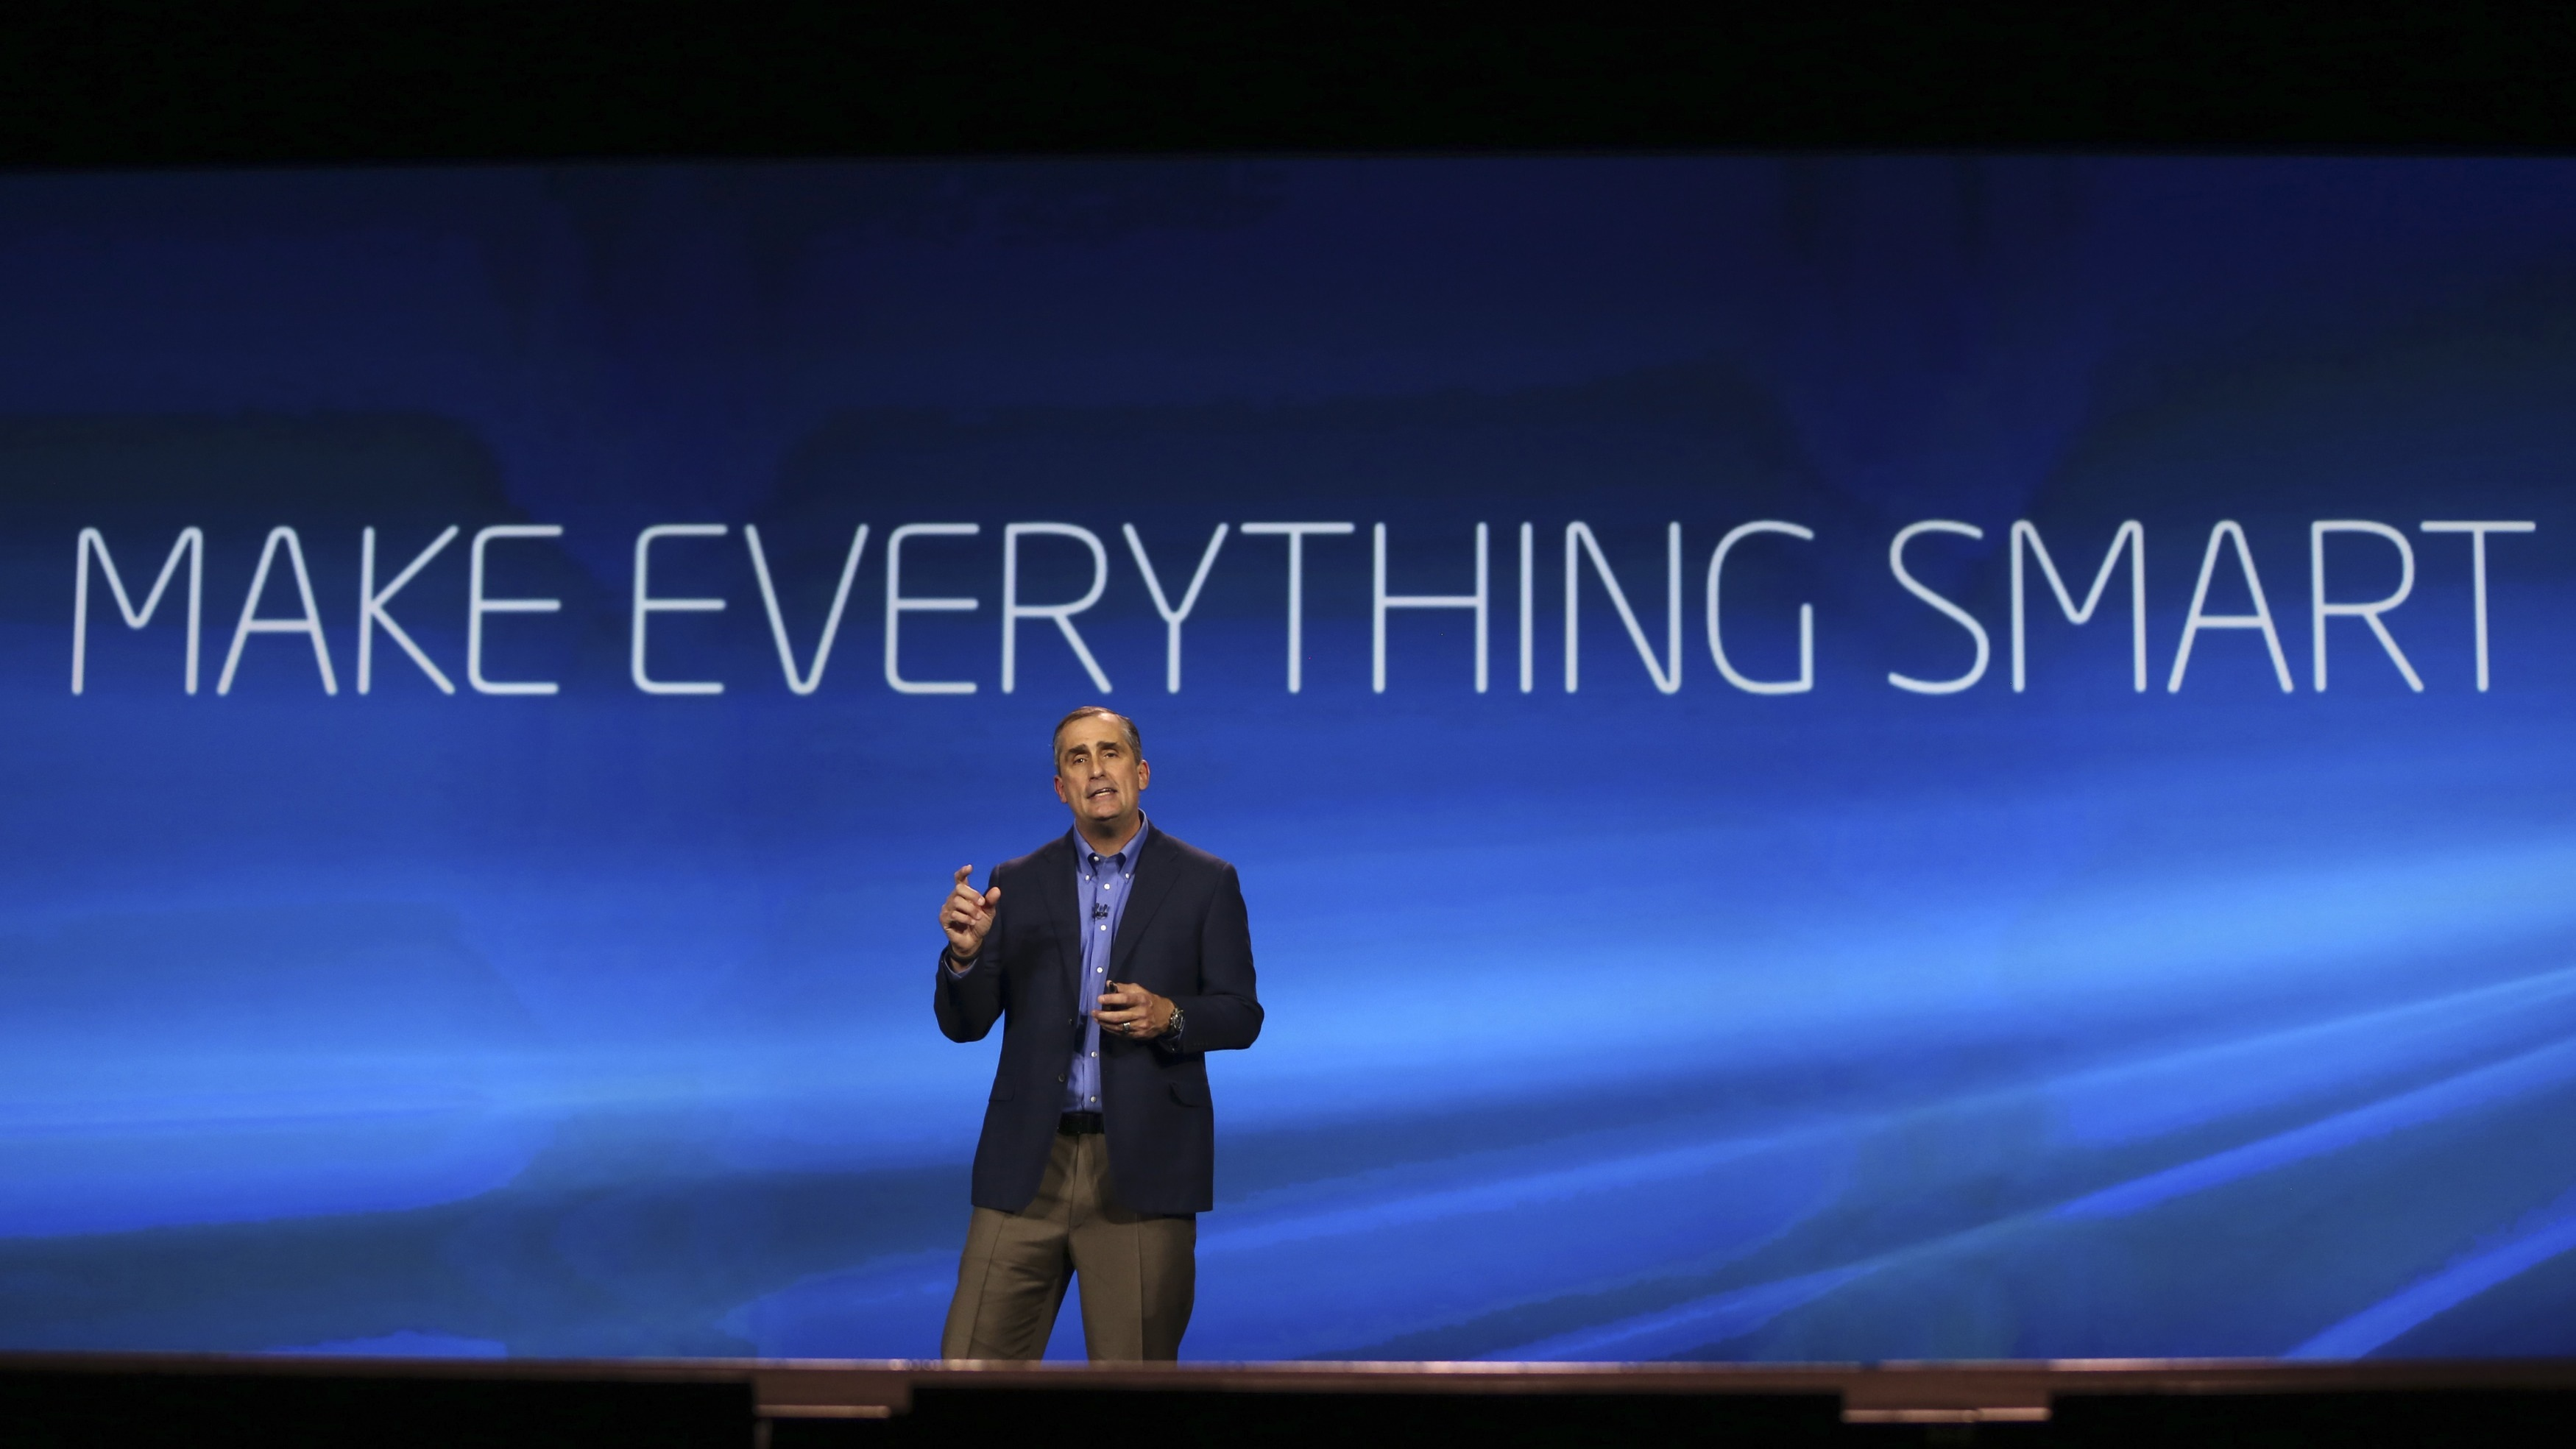 Intel CEO Brian Krzanich gestures during his keynote address at the Consumer Electronics Show (CES) in Las Vegas, Nevada January 6, 2014. REUTERS/Robert Galbraith